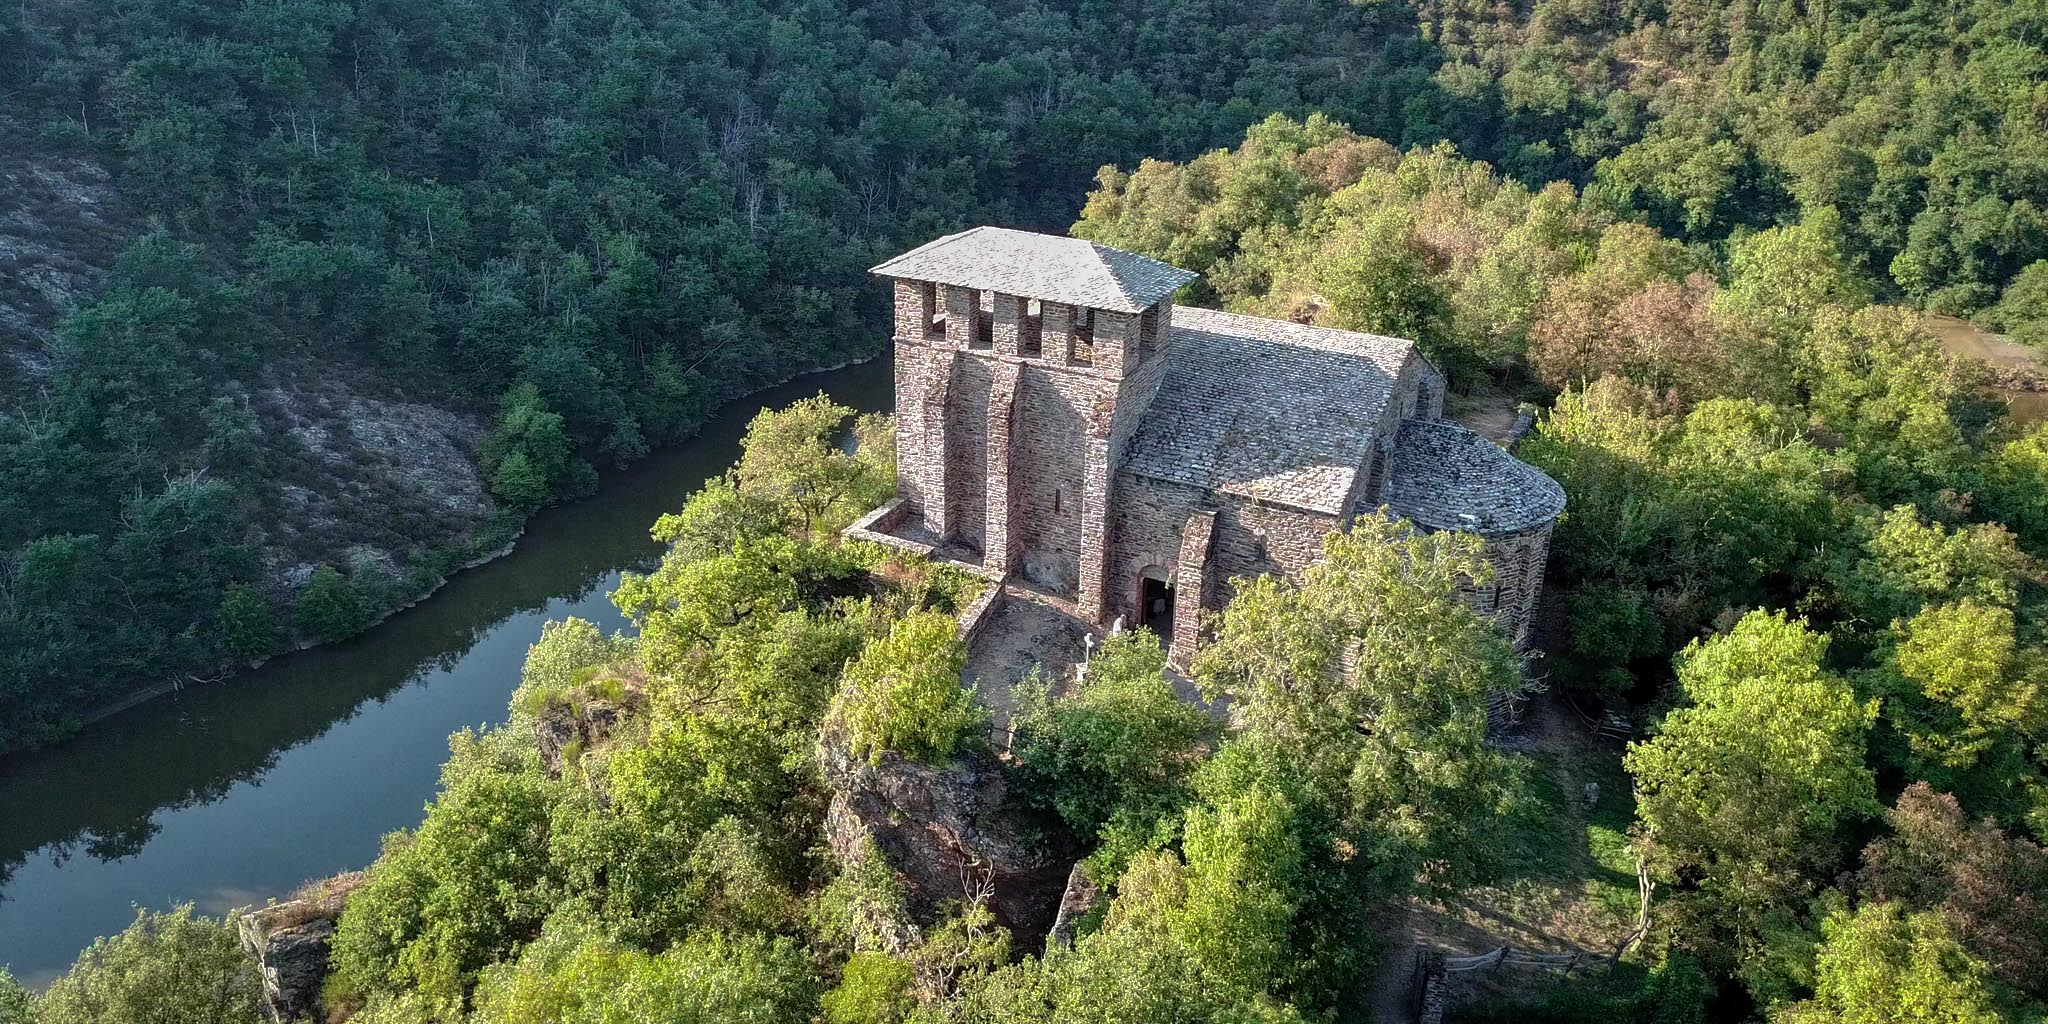 Chapelle de Las Planques, just a short hike from our location